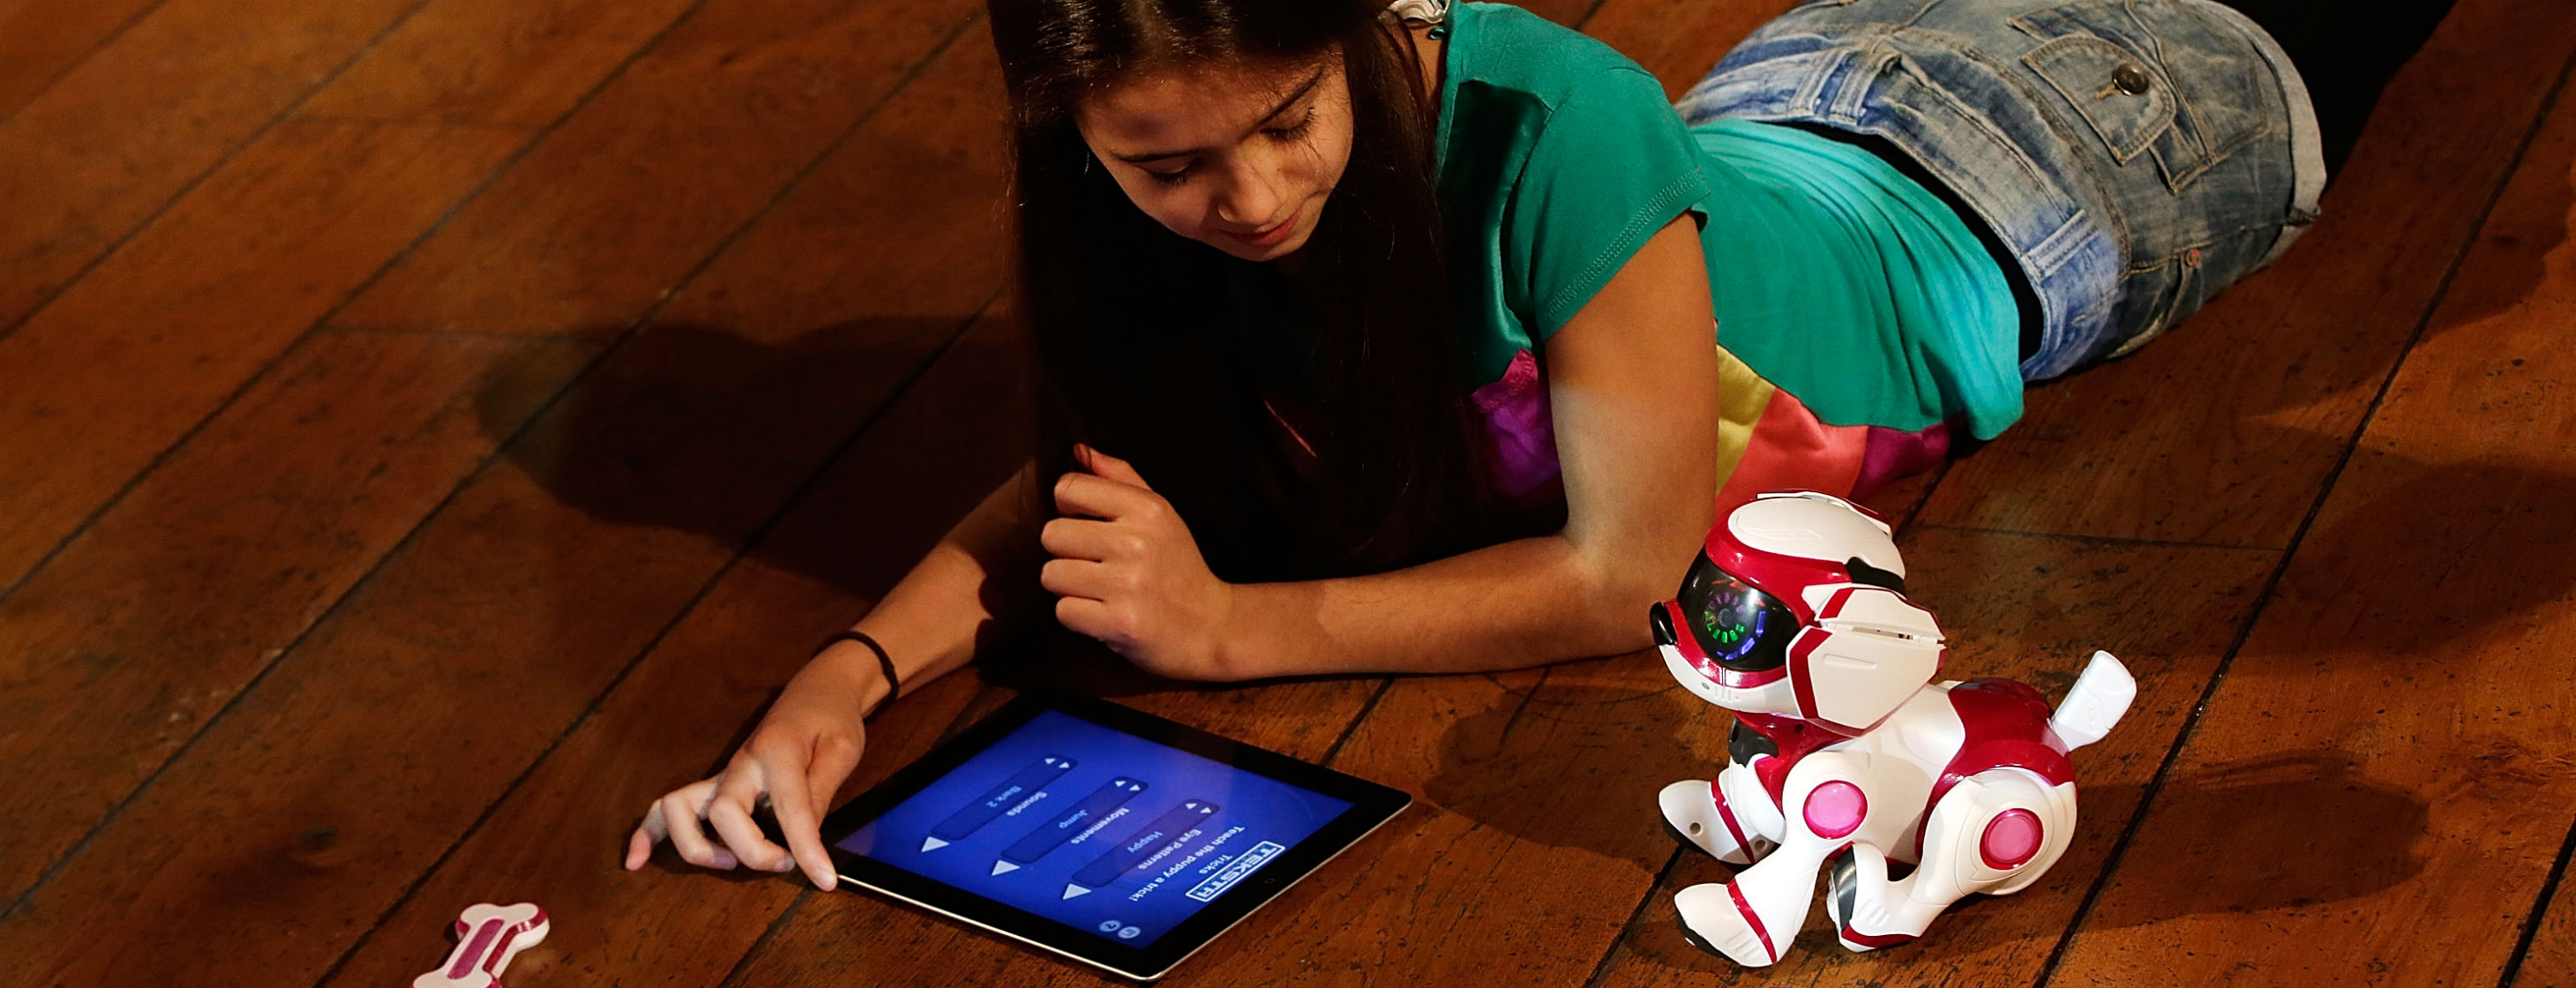 9 predictions for kids' tech in 2014